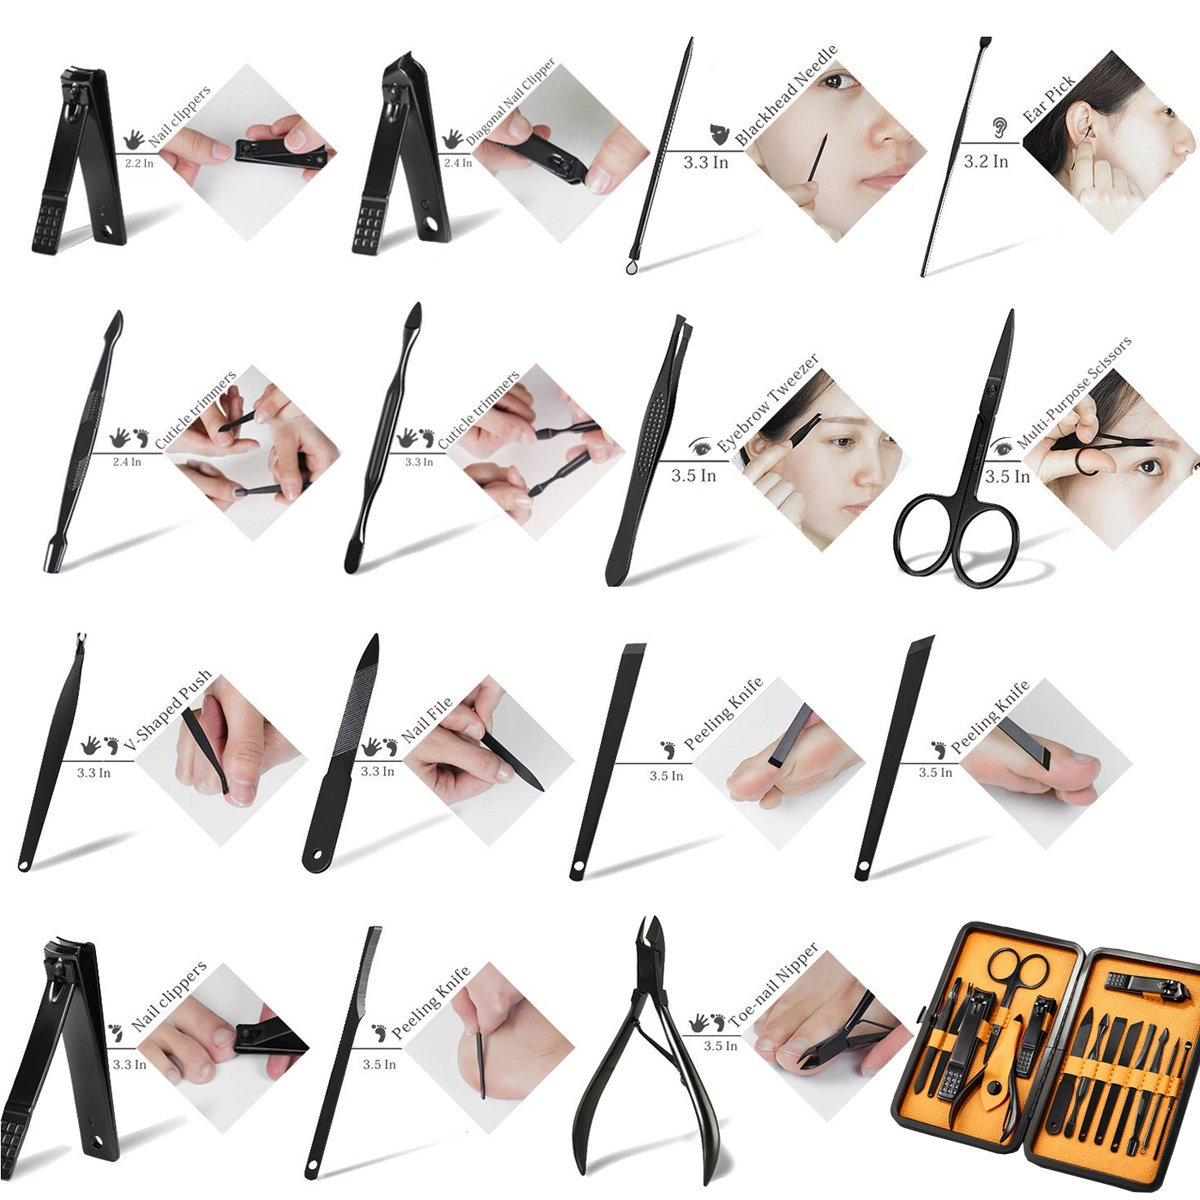 Keiby Citom Professional Stainless Steel Nail Clipper Travel & Grooming Kit Nail Tools Manicure & Pedicure Set of 15pcs with Luxurious Case(Black/Yellow) by Keiby Citom (Image #7)